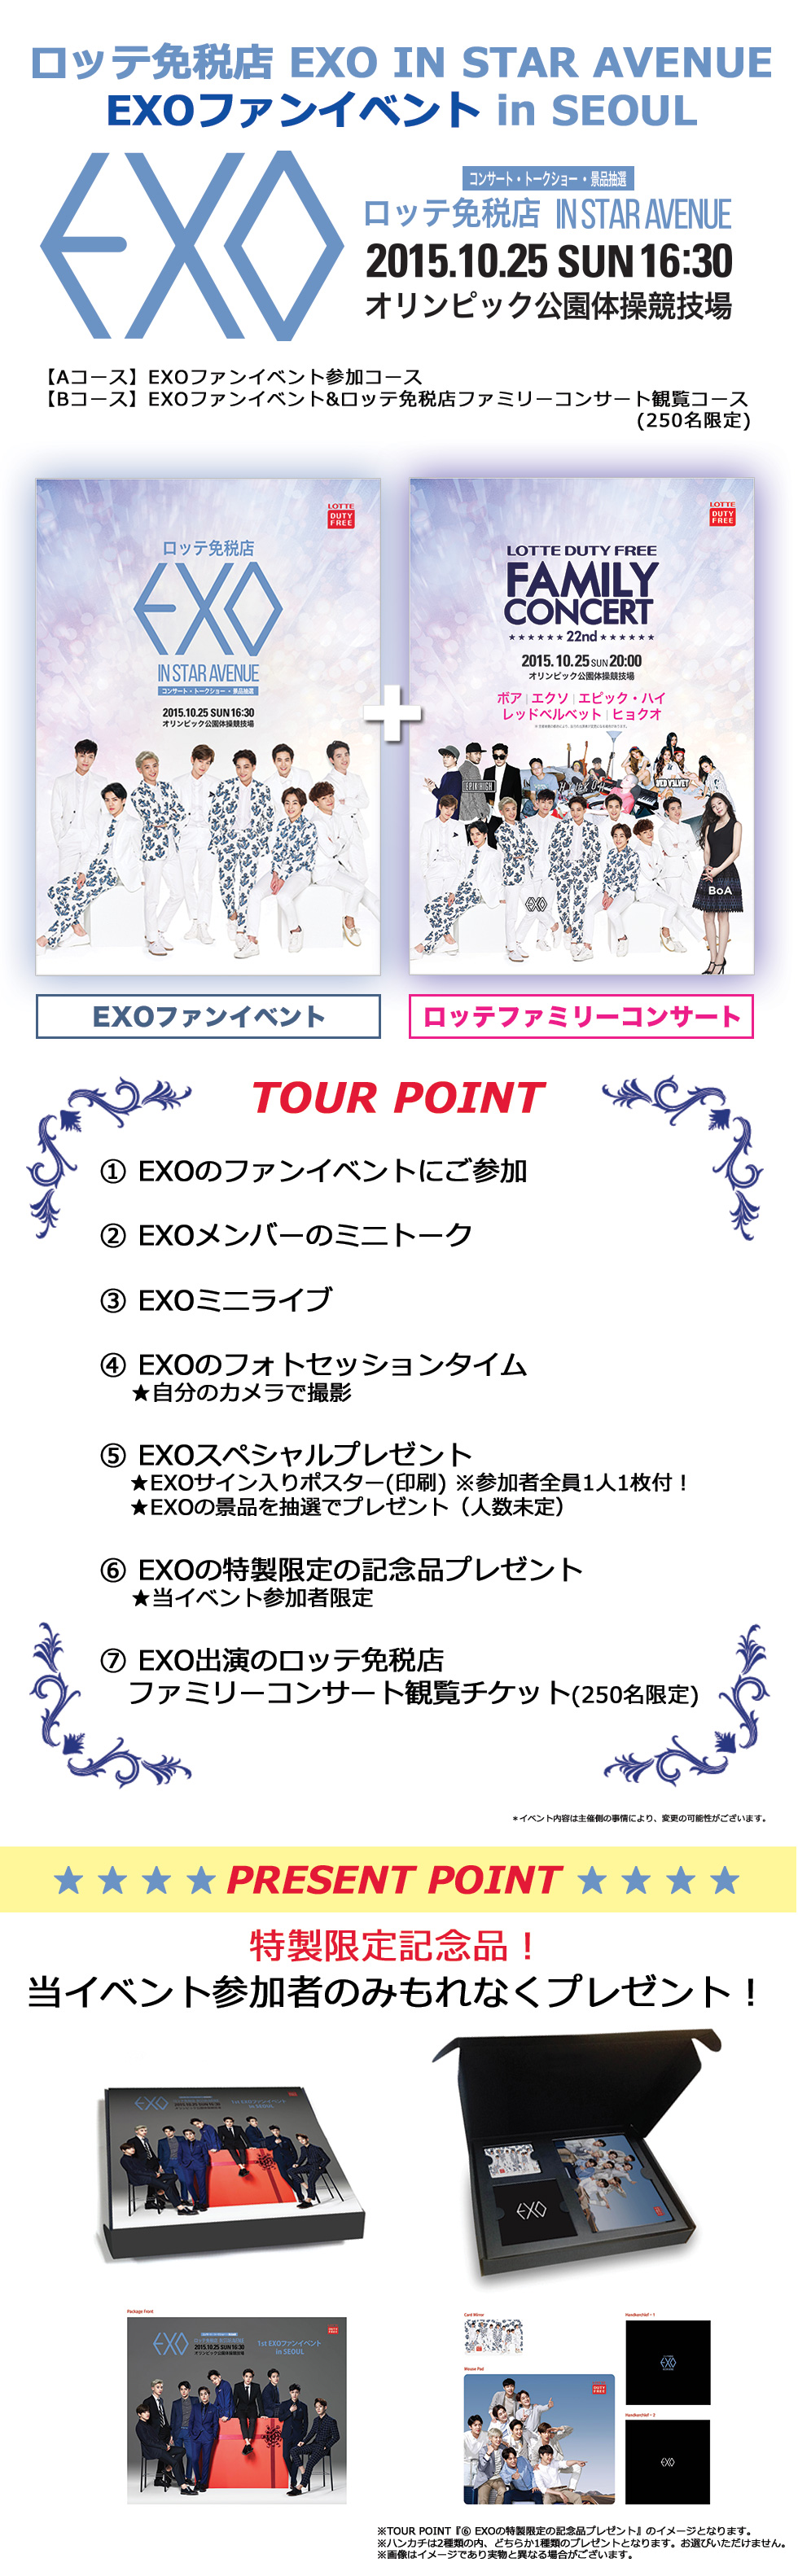 ロッテ免税店 EXO IN STAR AVENUE